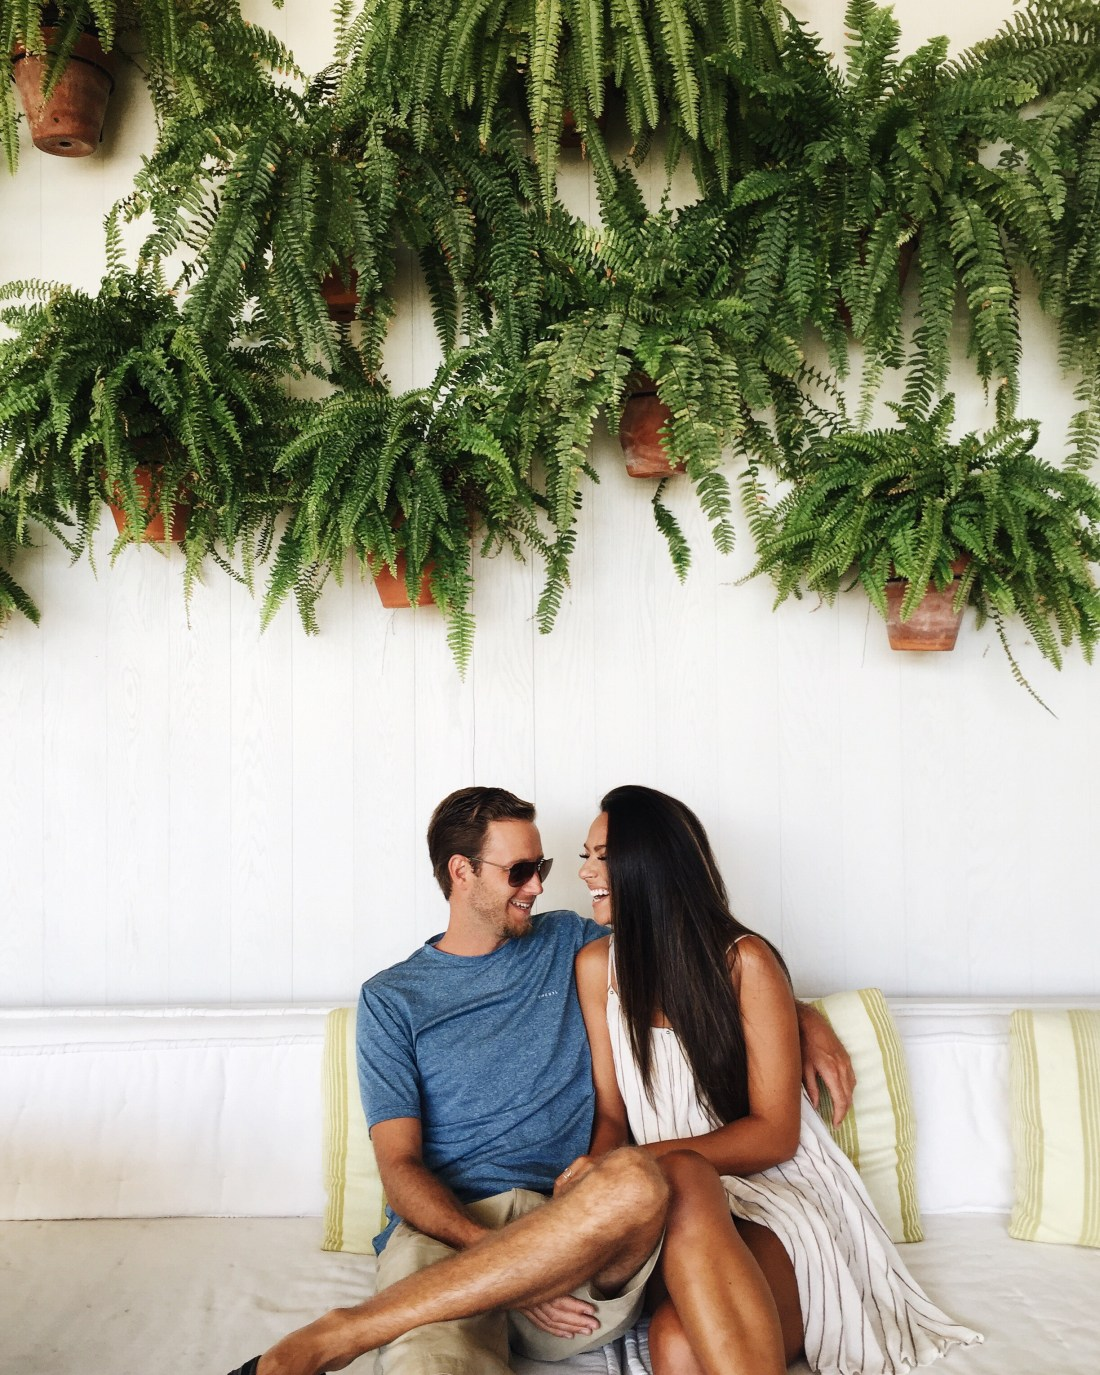 Couple In Love | Travel Bloggers | Happy & In Love | Weekend Goals | The Modern Honolulu | Best Hotels in Hawaii | Drinks at the Pool | Best Places to Stay in Honolulu | Travel Guide to Oahu via @elanaloo + elanaloo.com